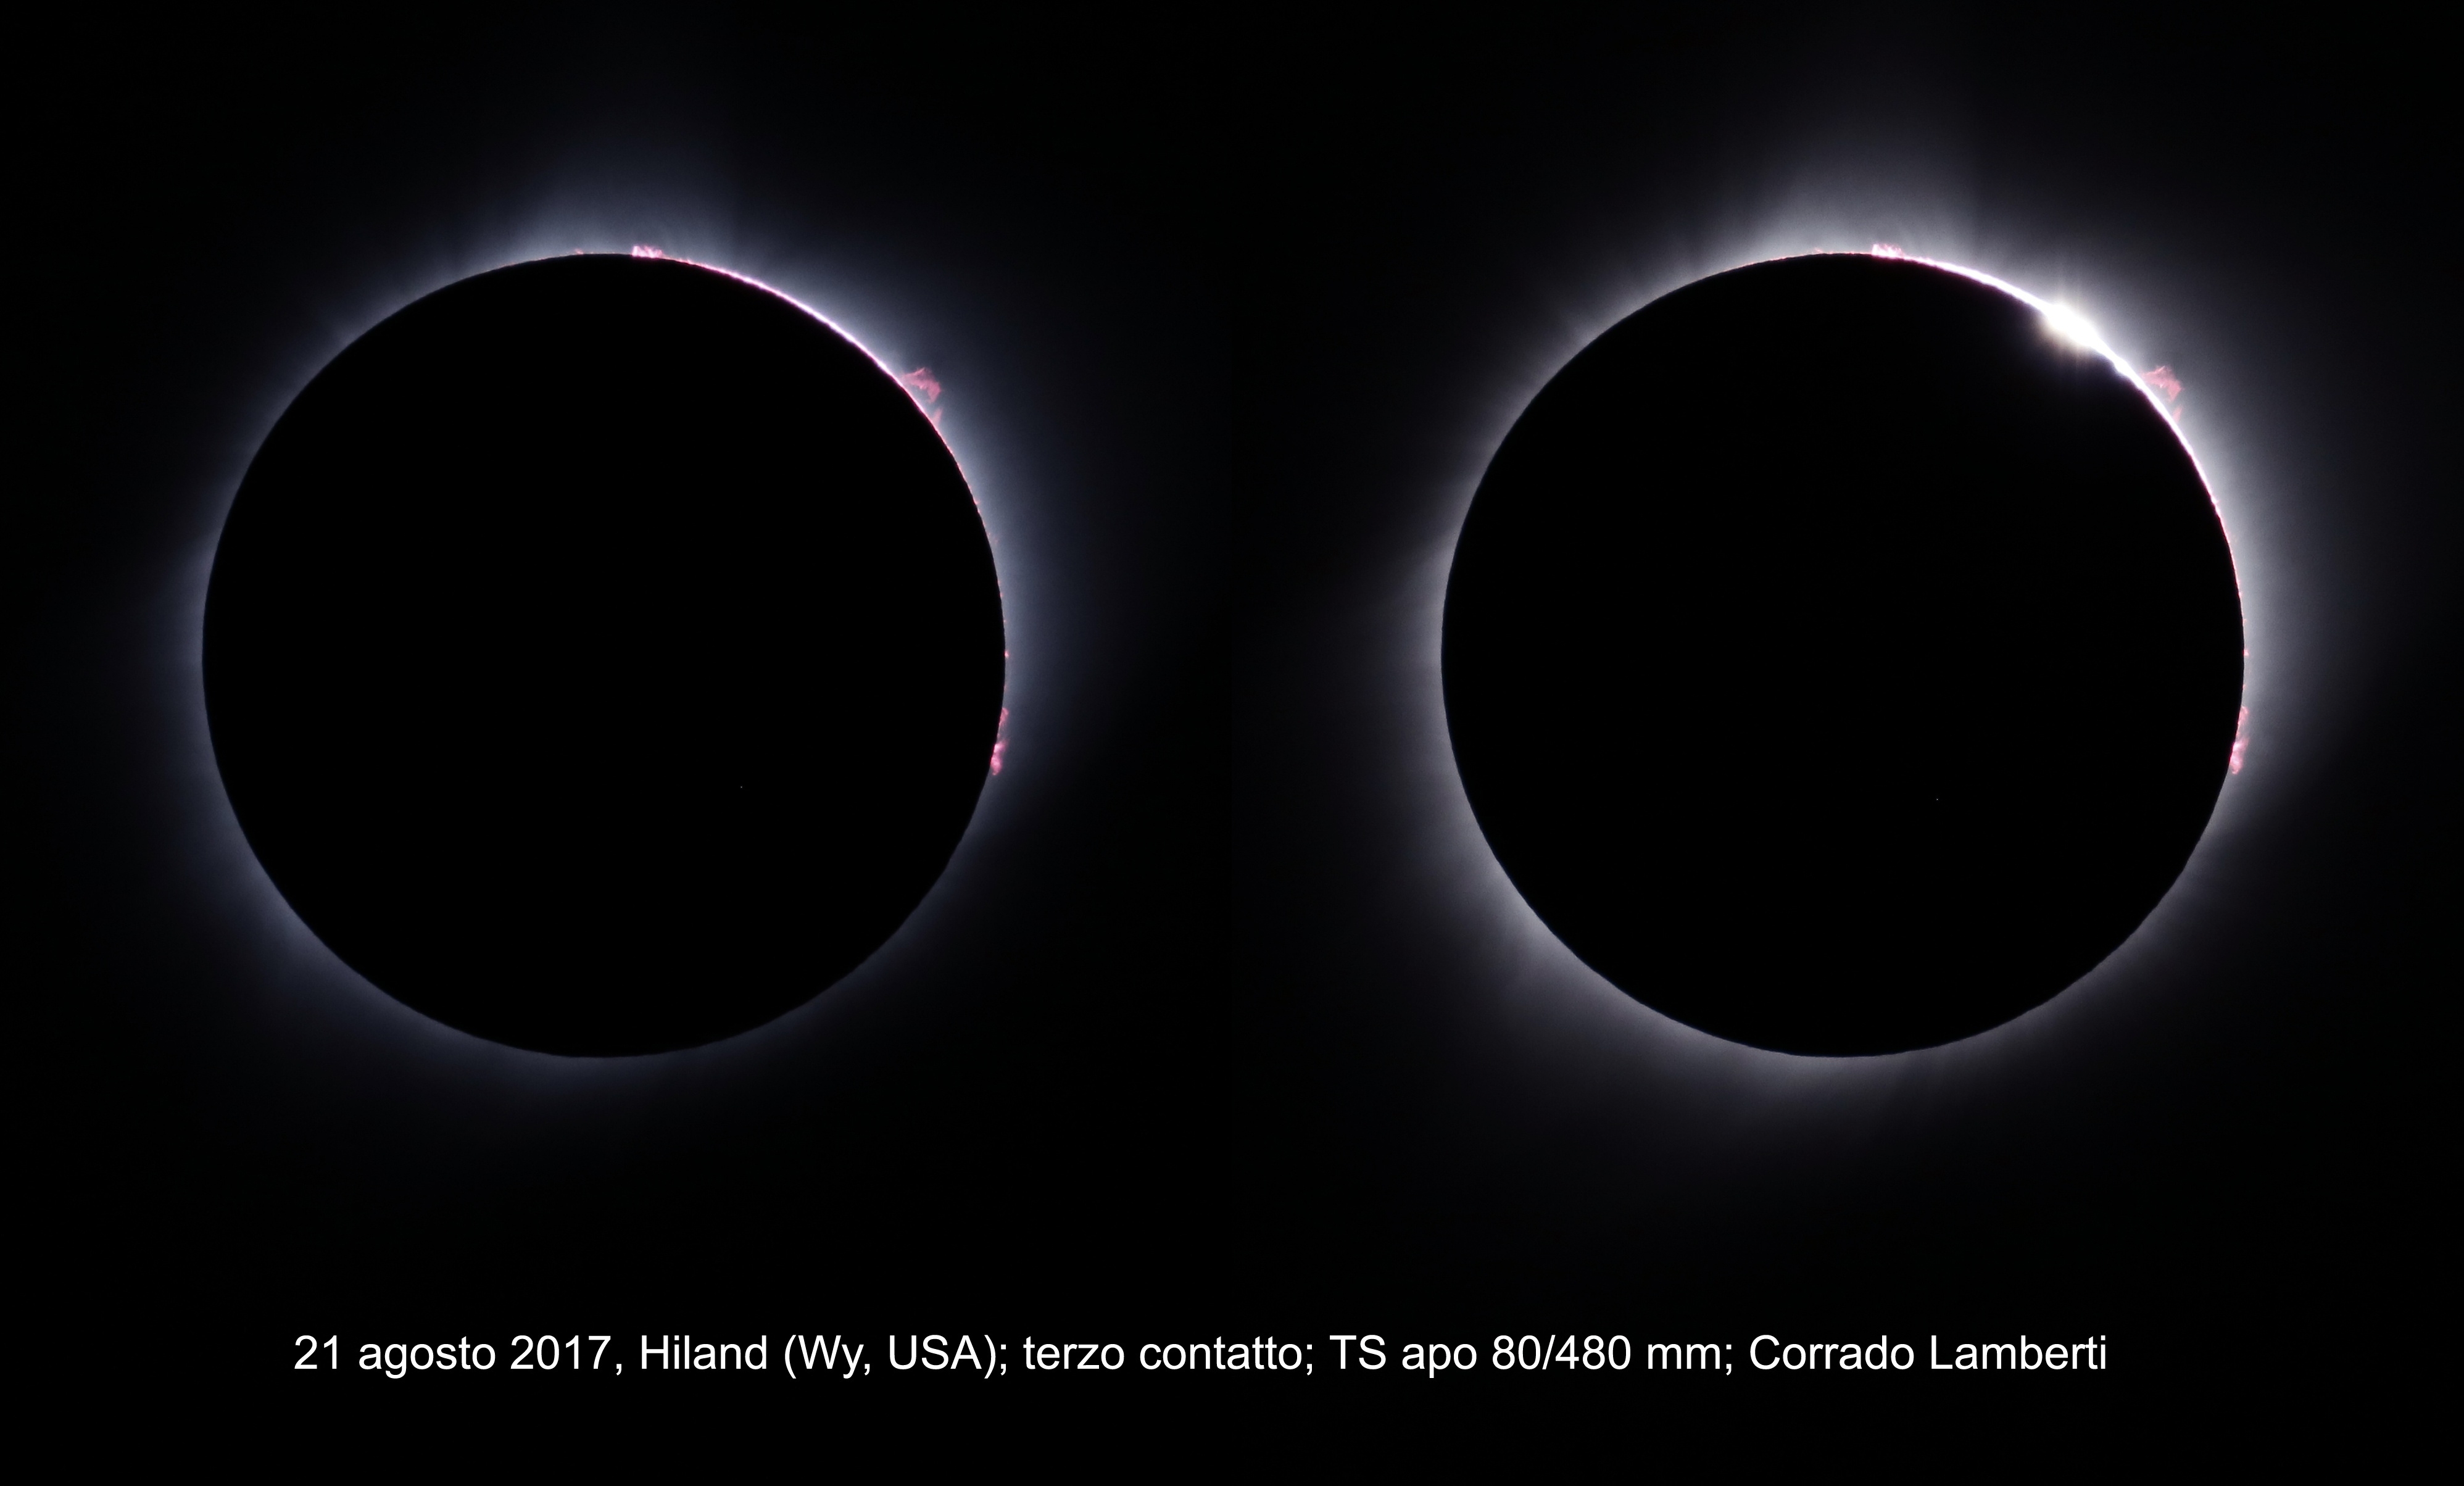 Eclissi totale di Sole del 21 agosto 2017